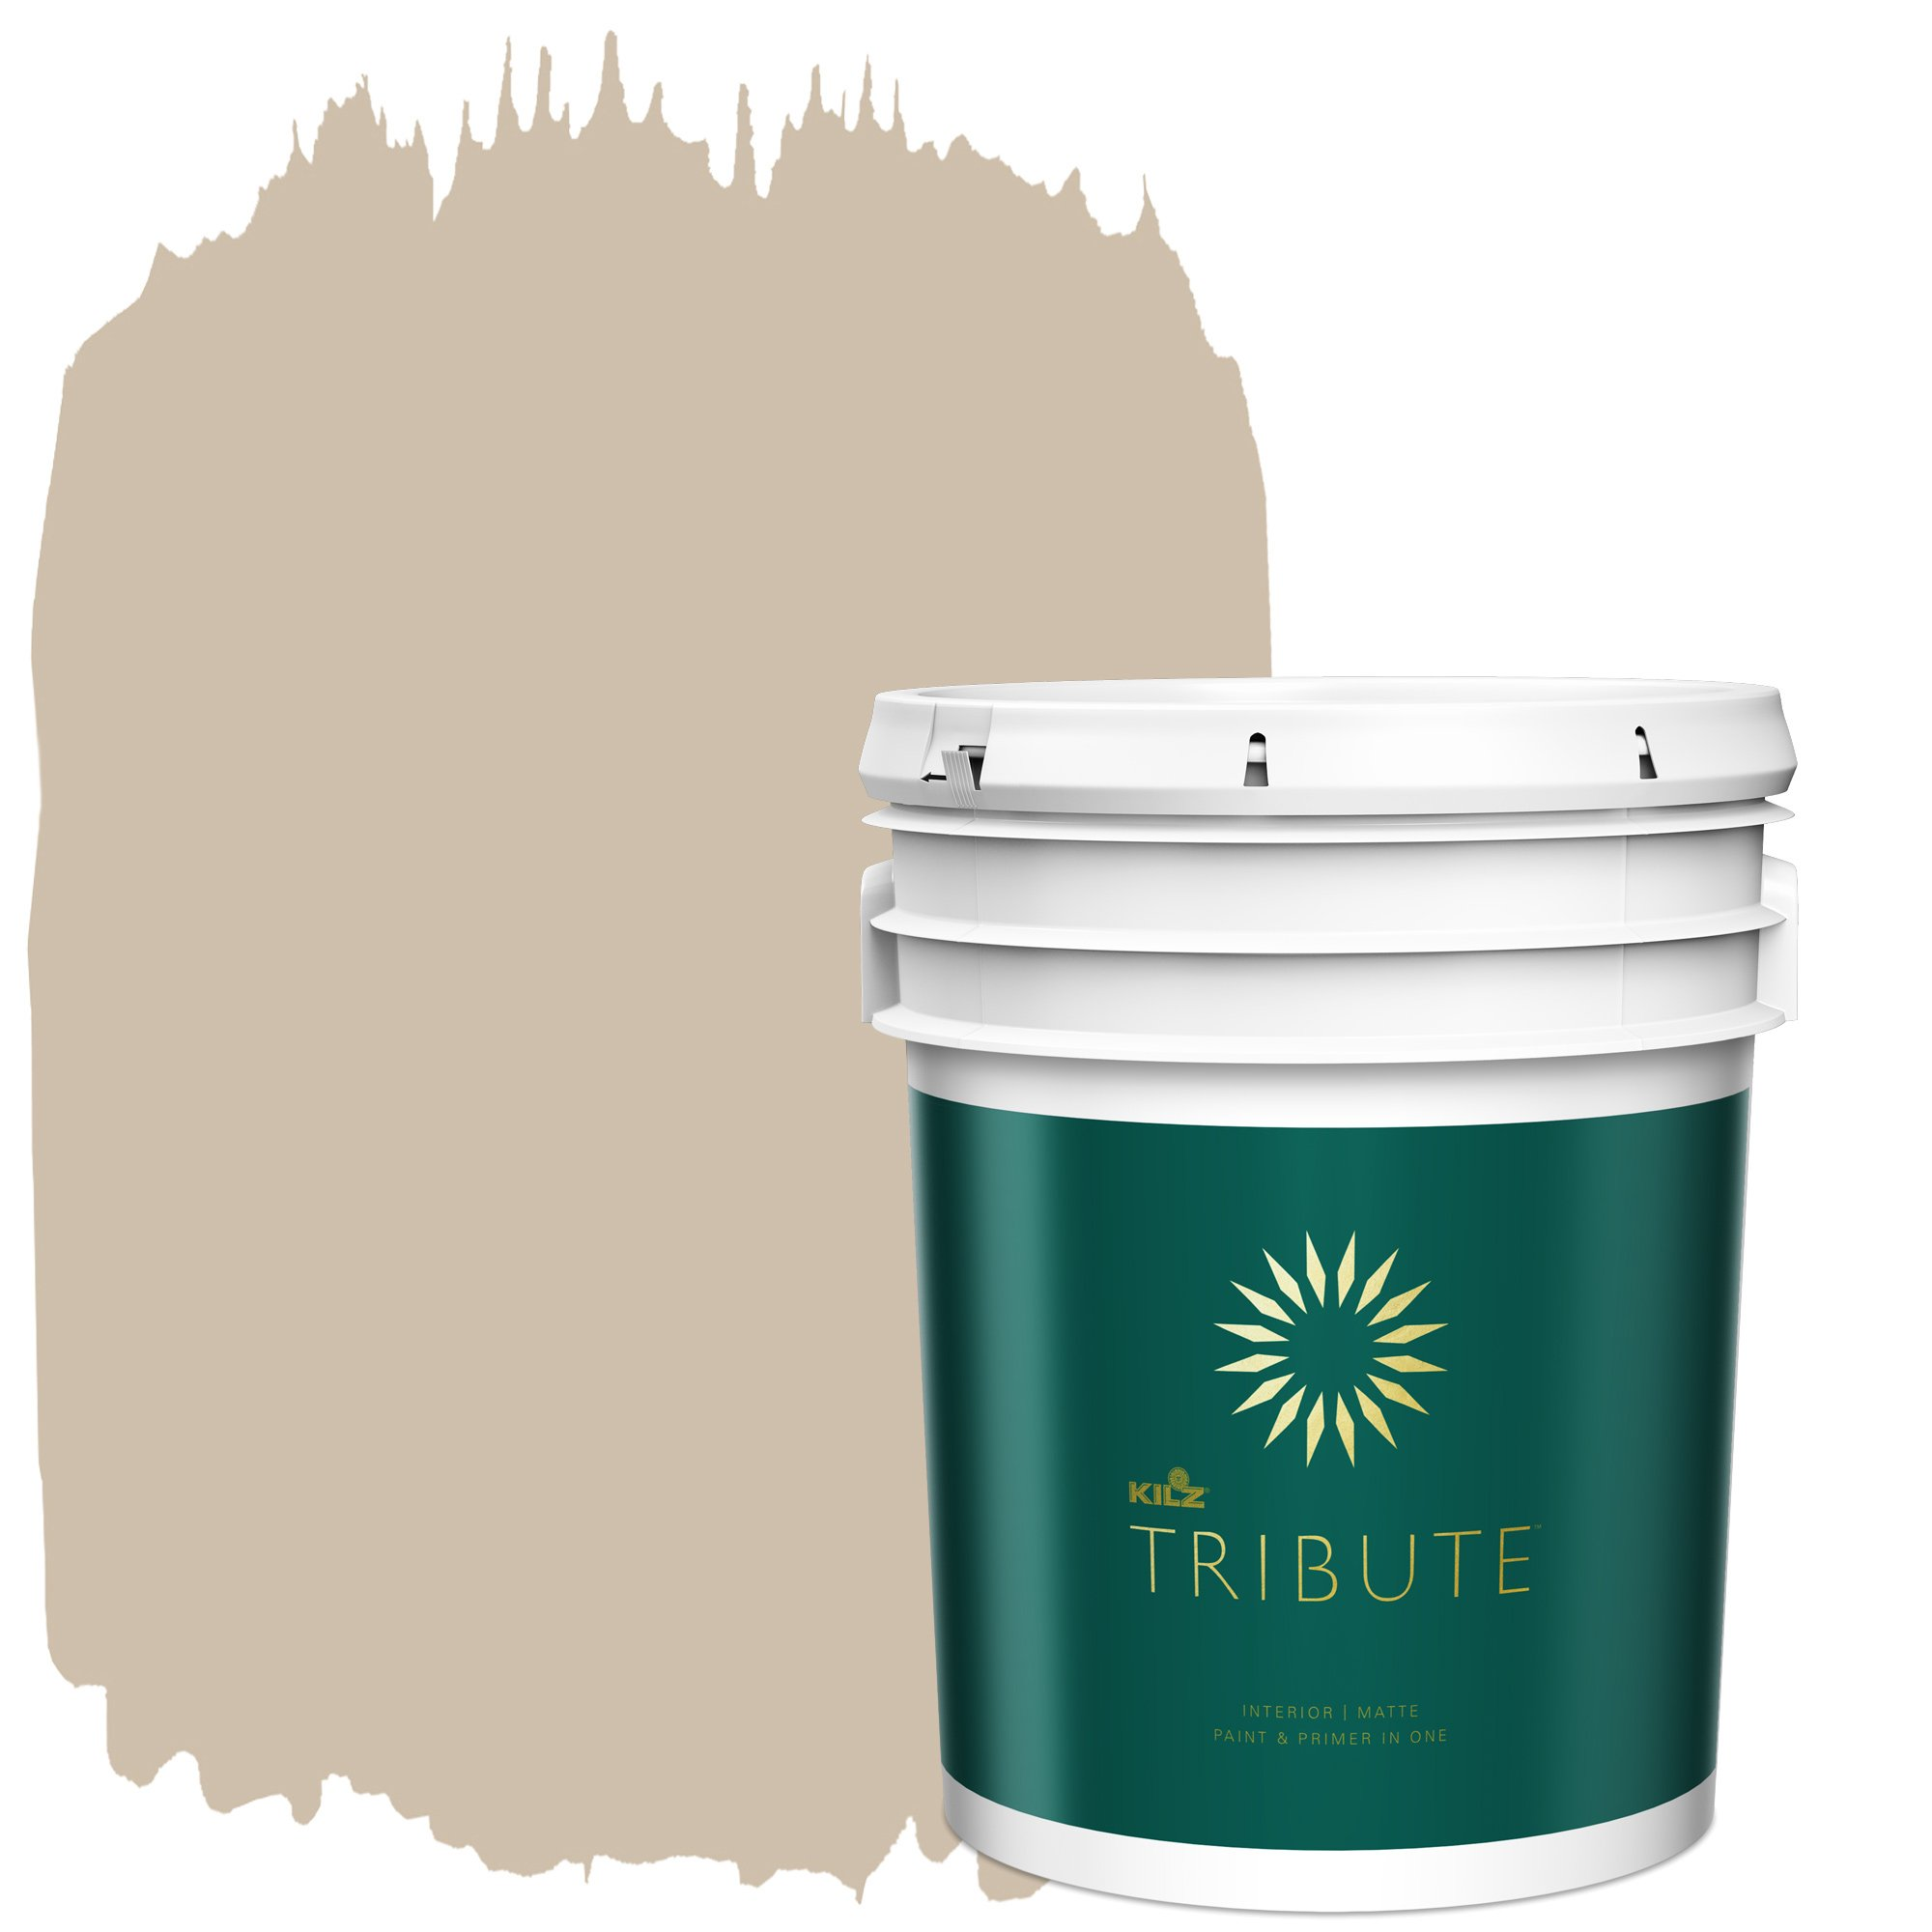 KILZ TRIBUTE Interior Matte Paint and Primer in One, 5 Gallon, Bronze Mist (TB-13) by KILZ